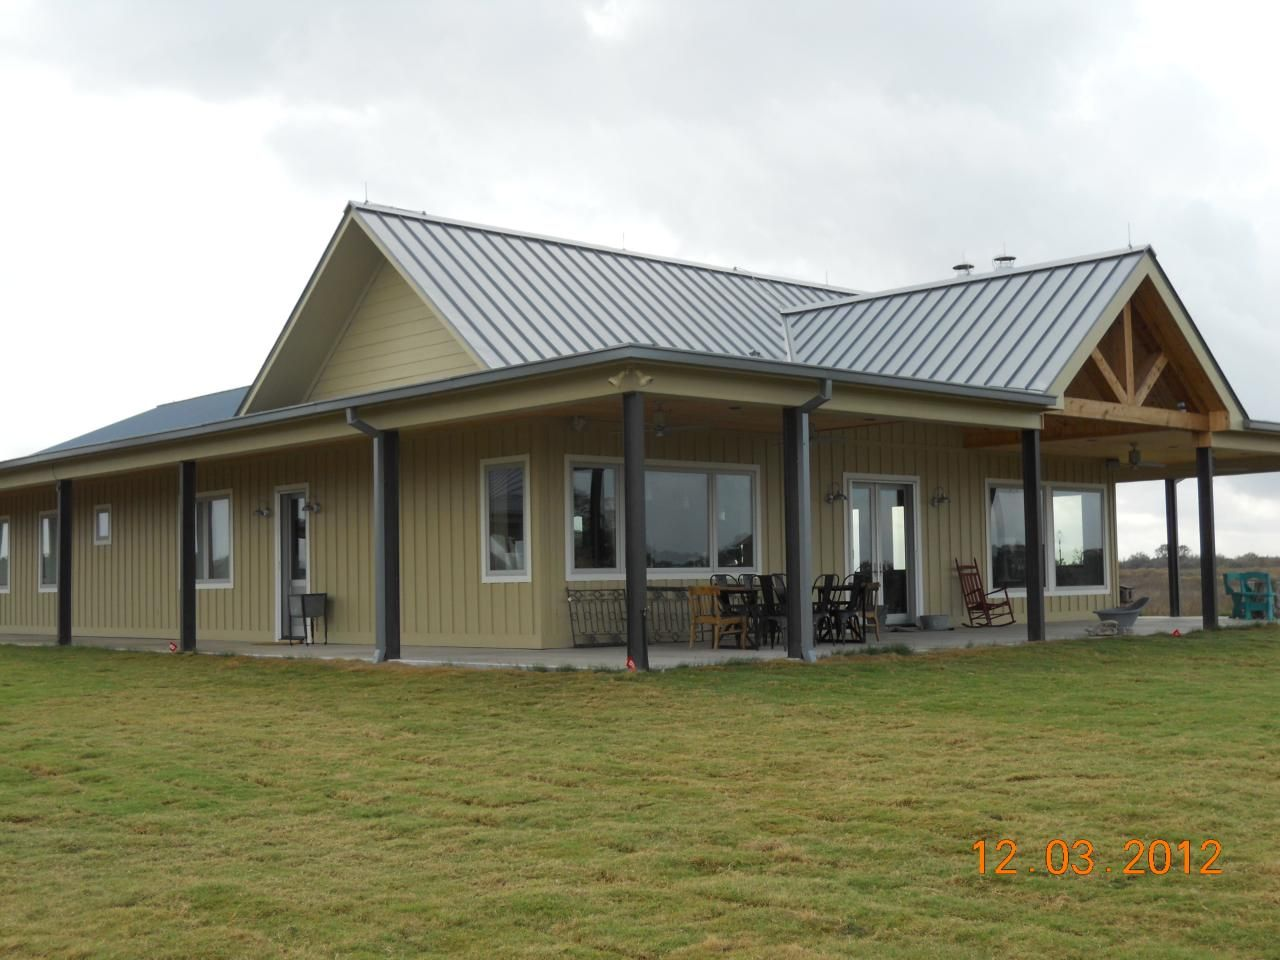 Texas barndominium house plans picture gallery custom Building model homes